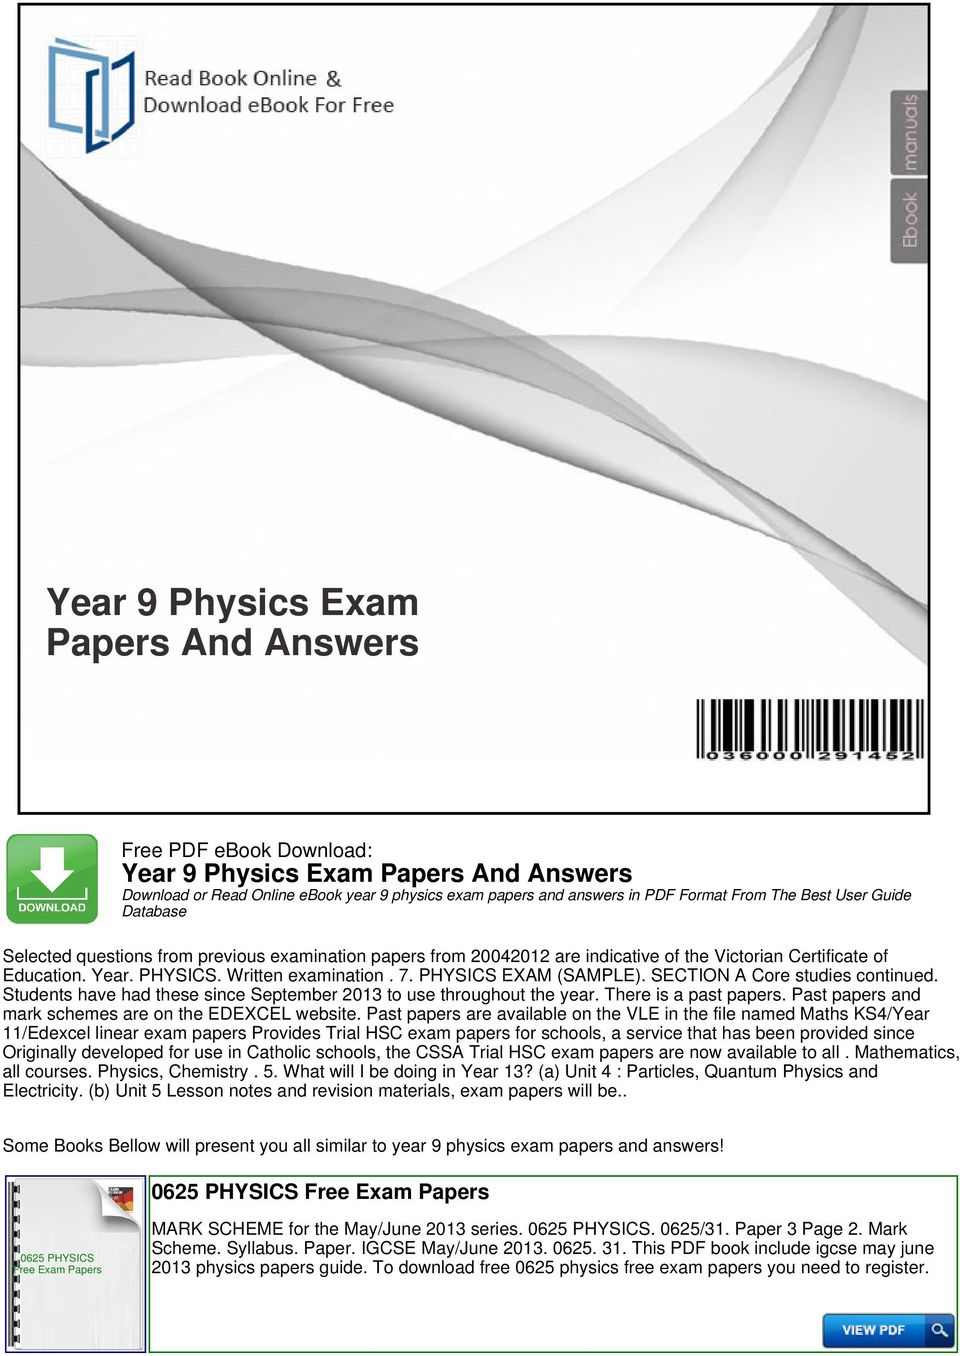 year 9 physics exam papers and answers pdf section a core studies continued students have had these since 2013 to use throughout